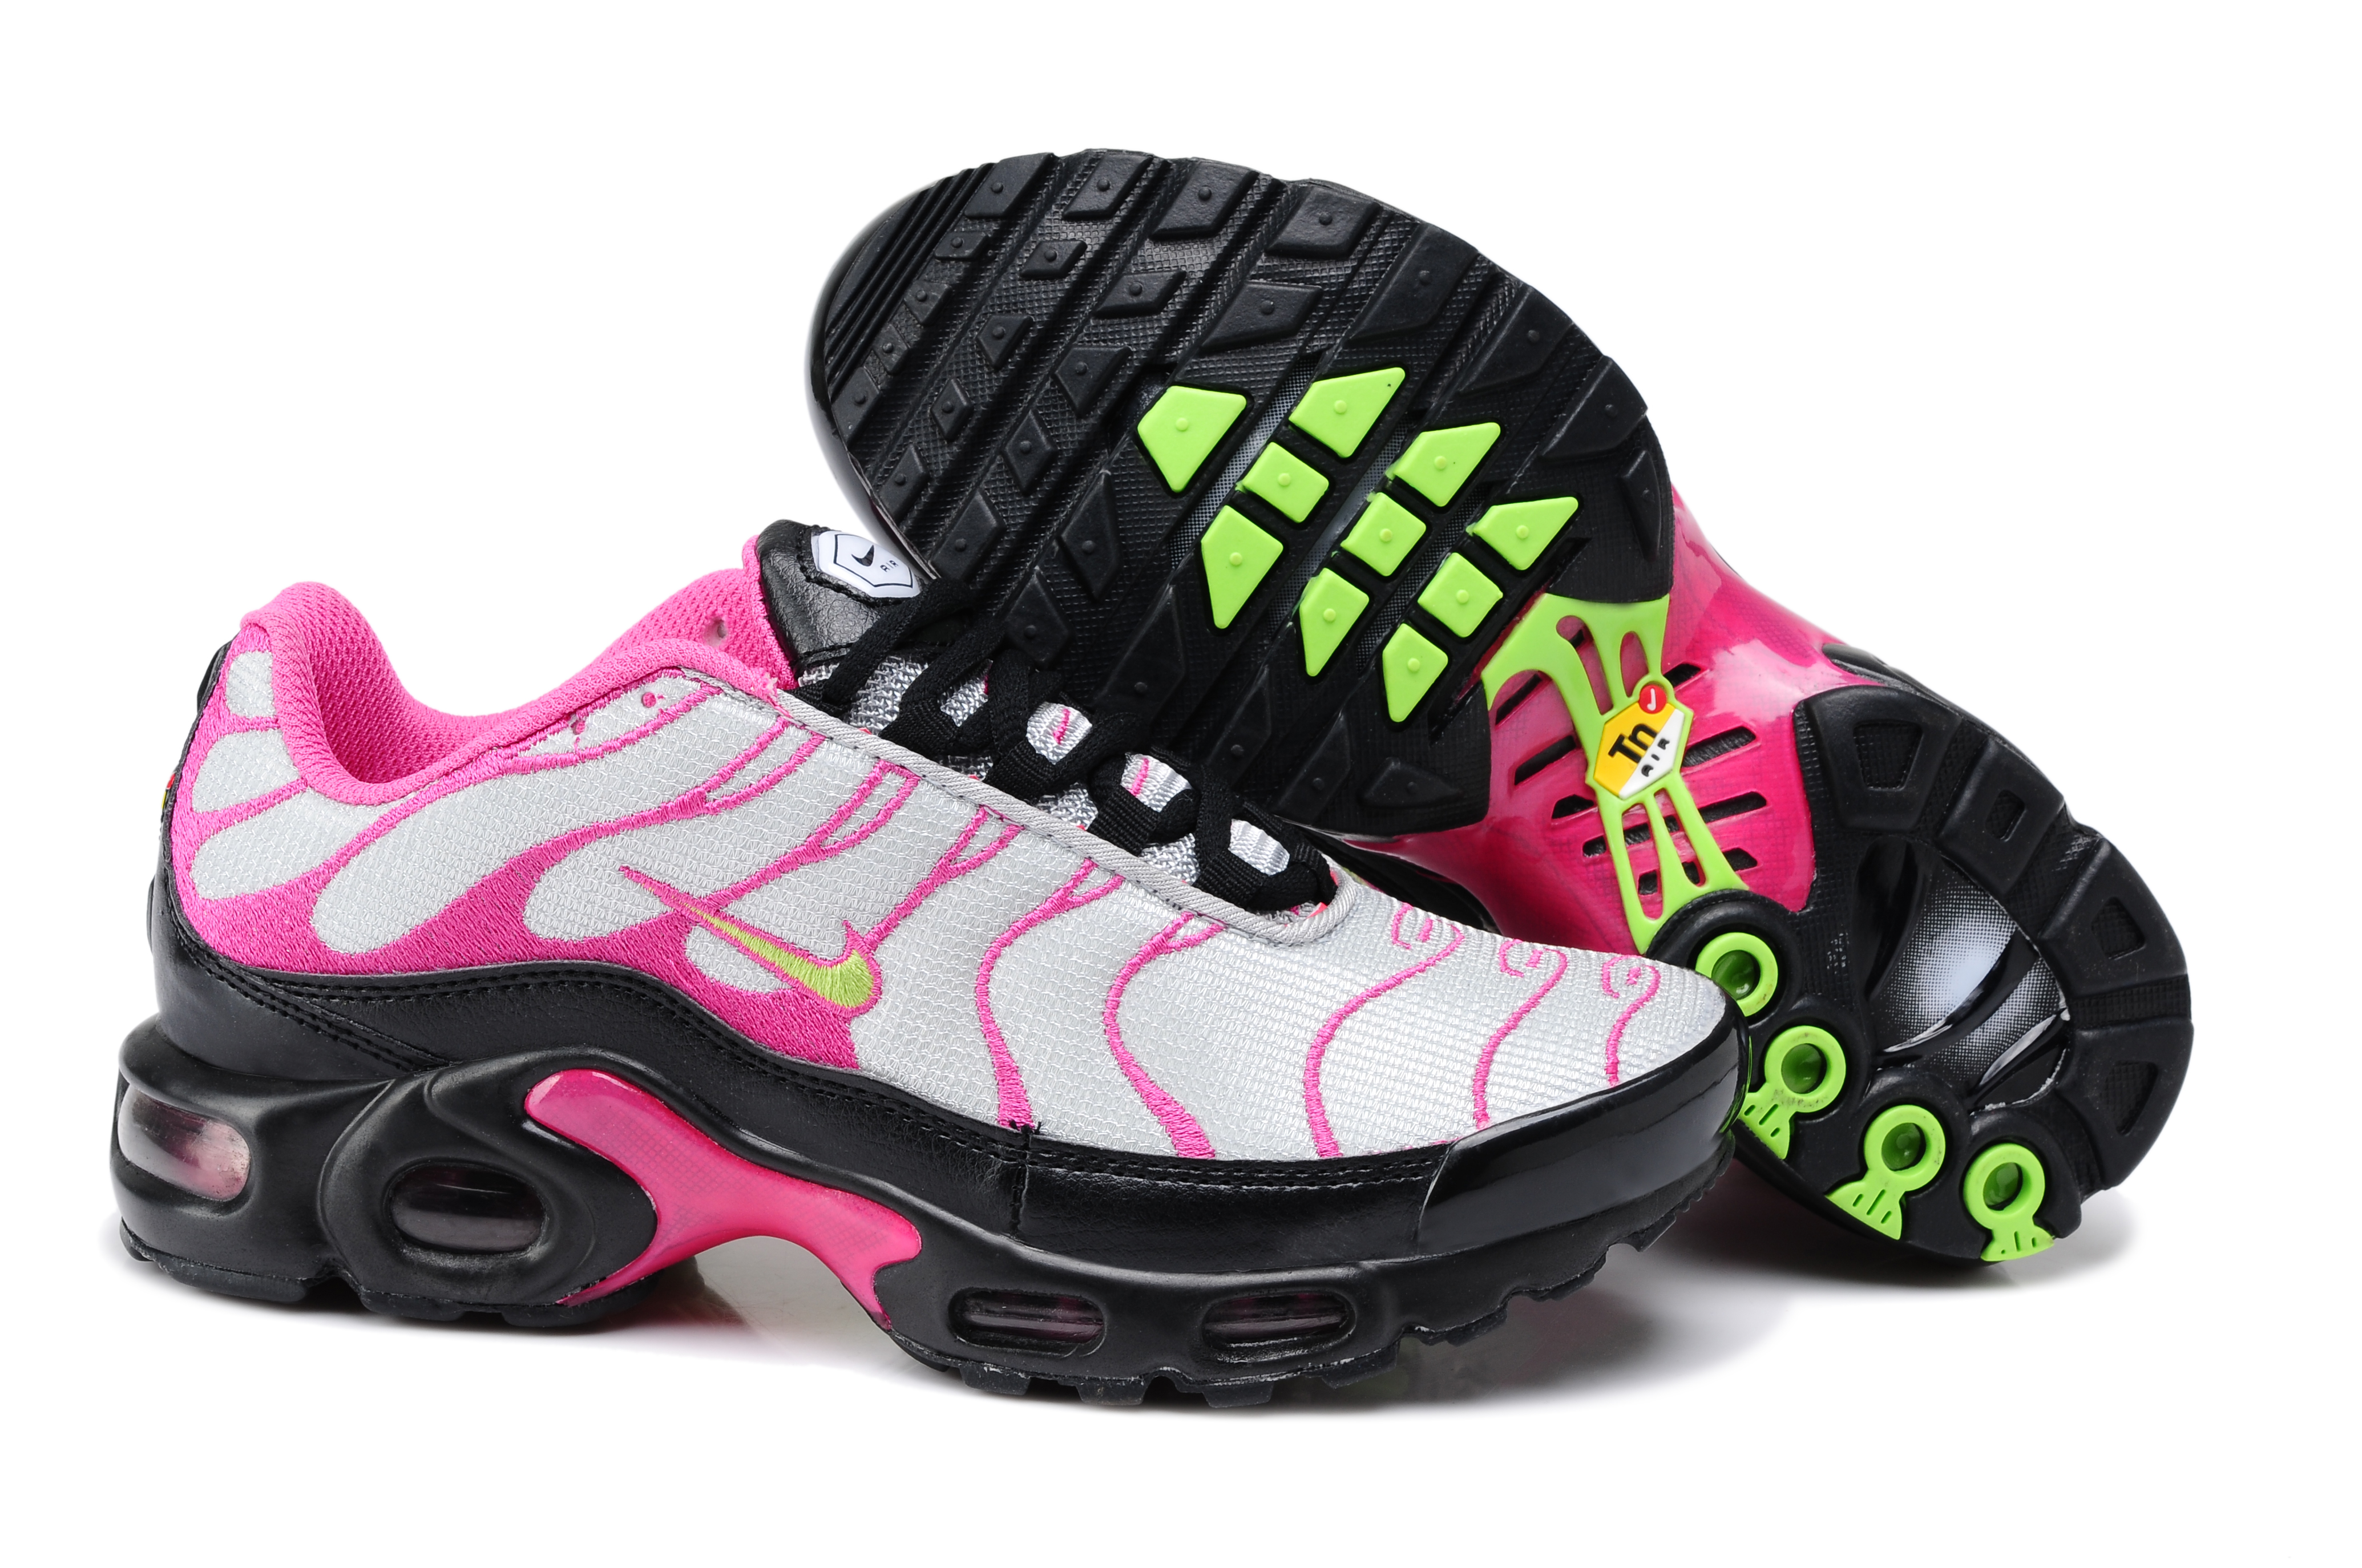 Cher Air Max Femme Tn Nike Torch 2016 Vi 180 Pas Homme 0wxYSwXEq